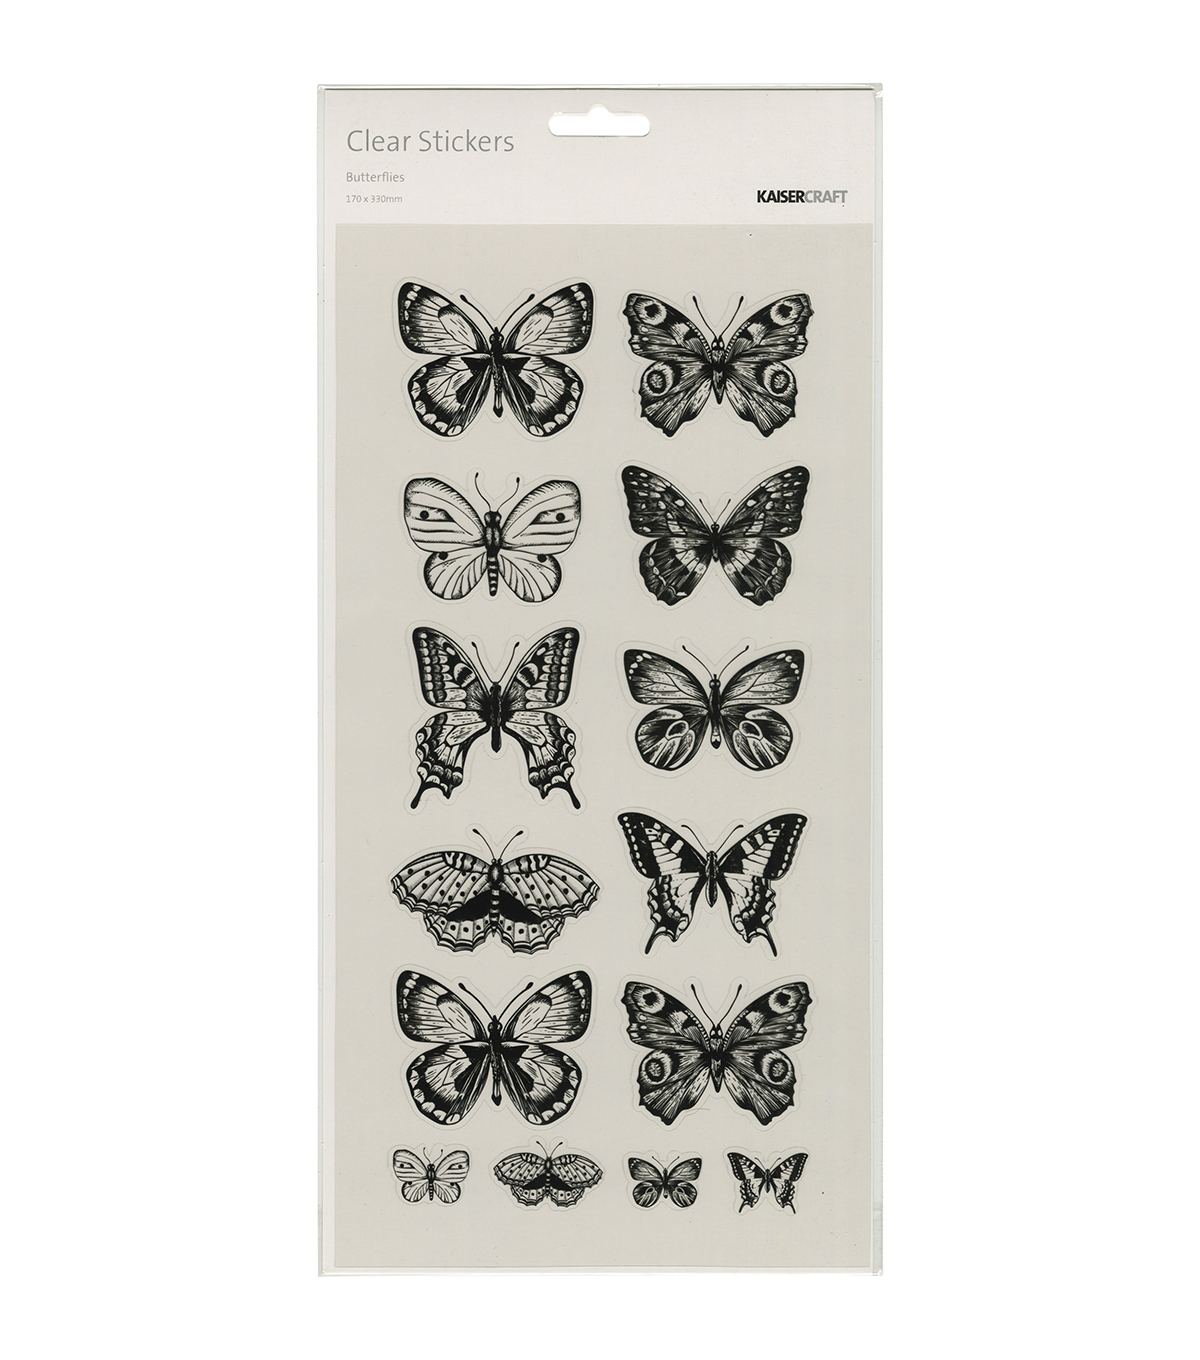 Kaisercraft Butterflies Clear Stickers